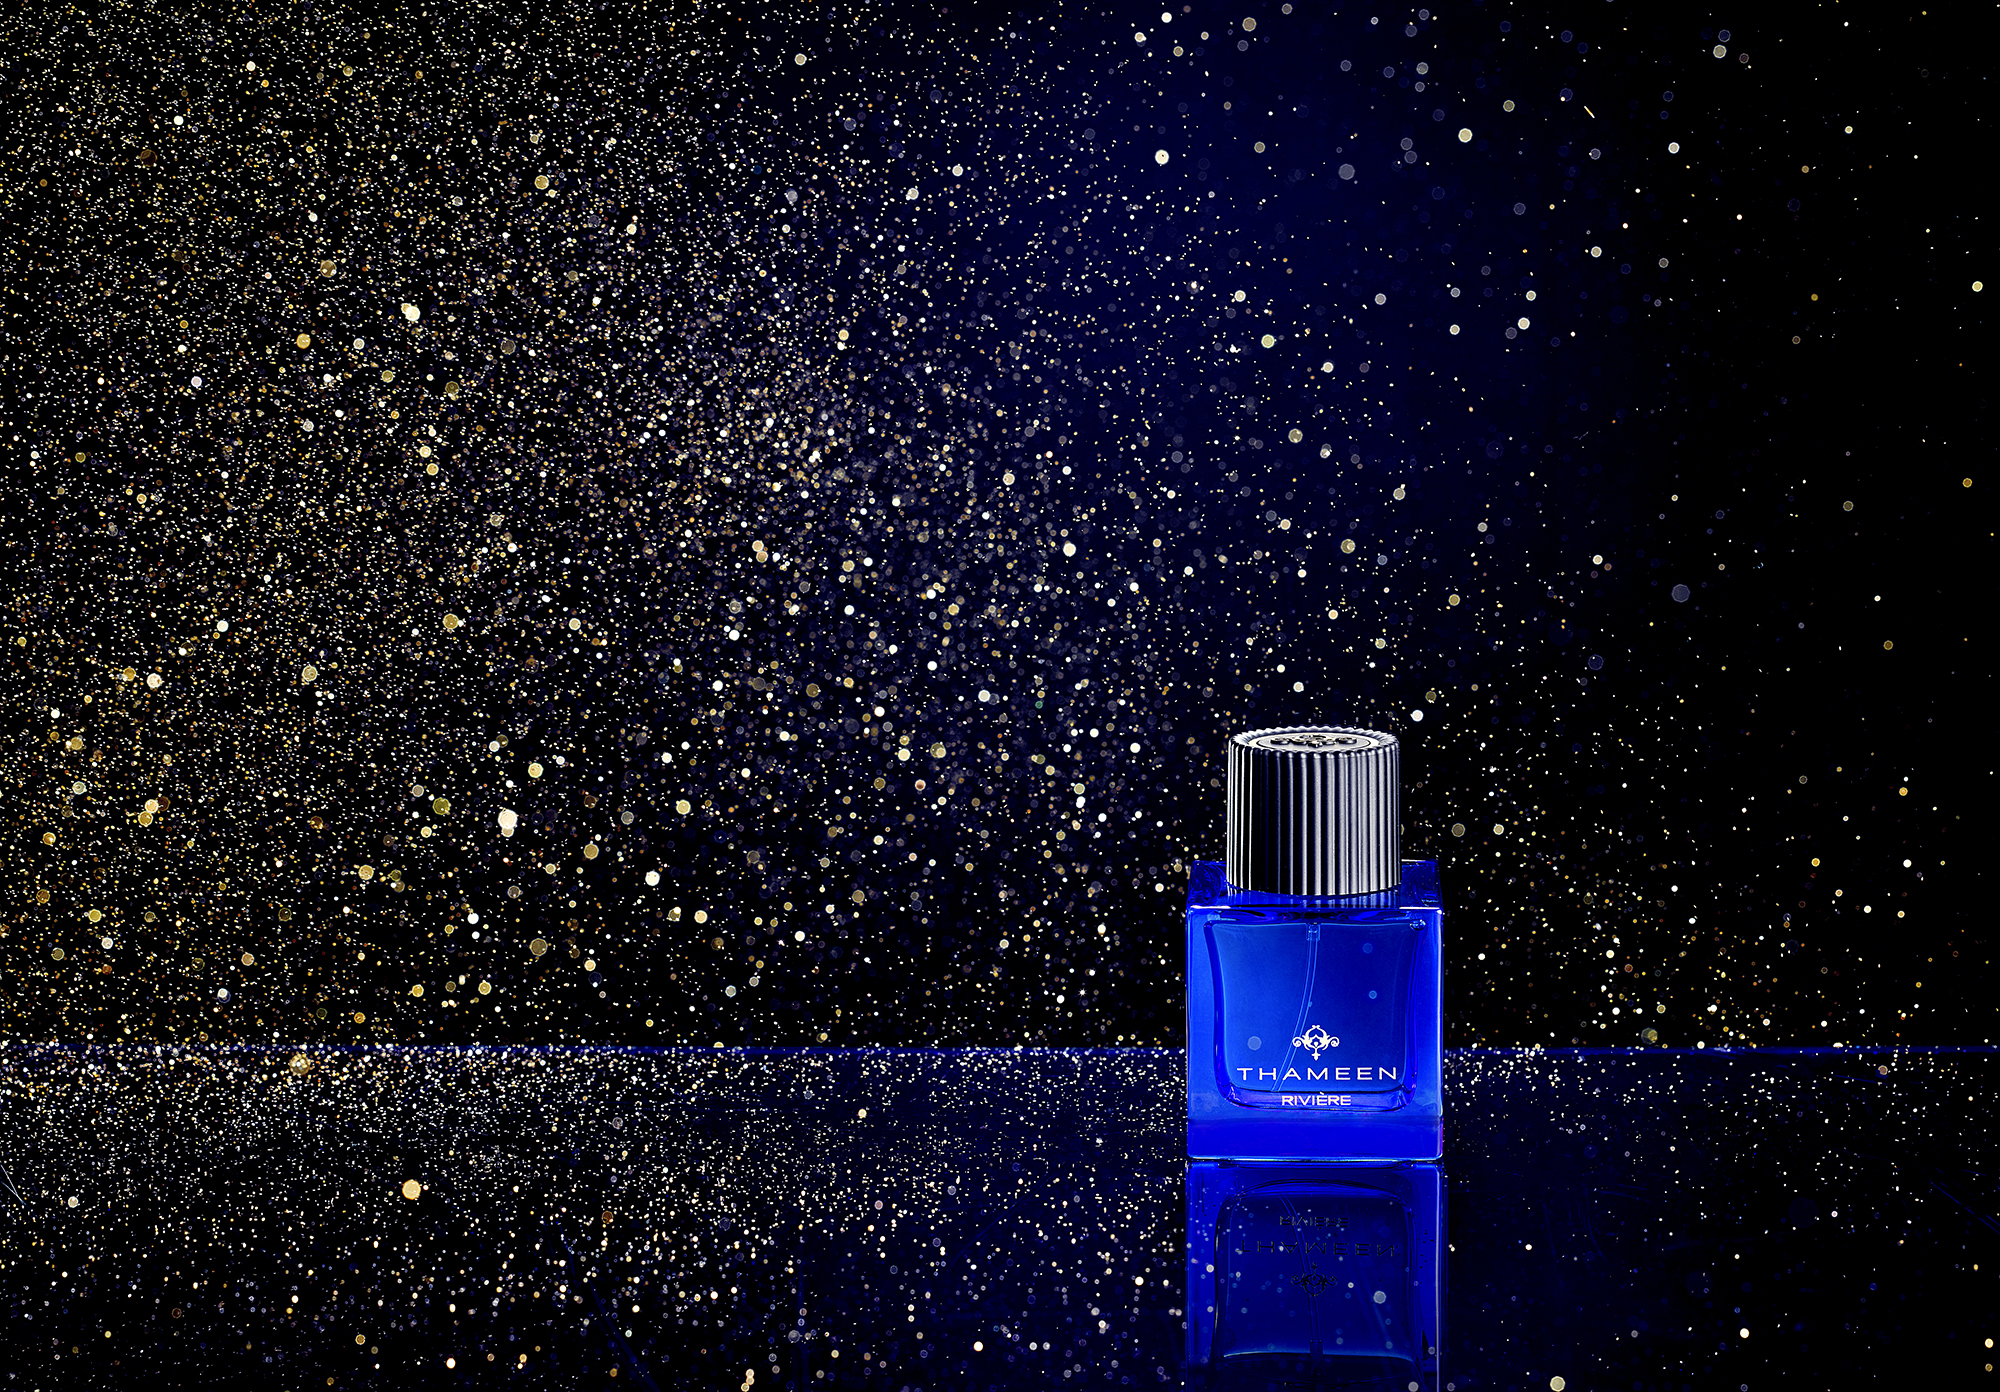 Advertising product photography, creative cosmetic perfume product with gold glitter explosion. Shot in London still life photography studio by Howlett photography